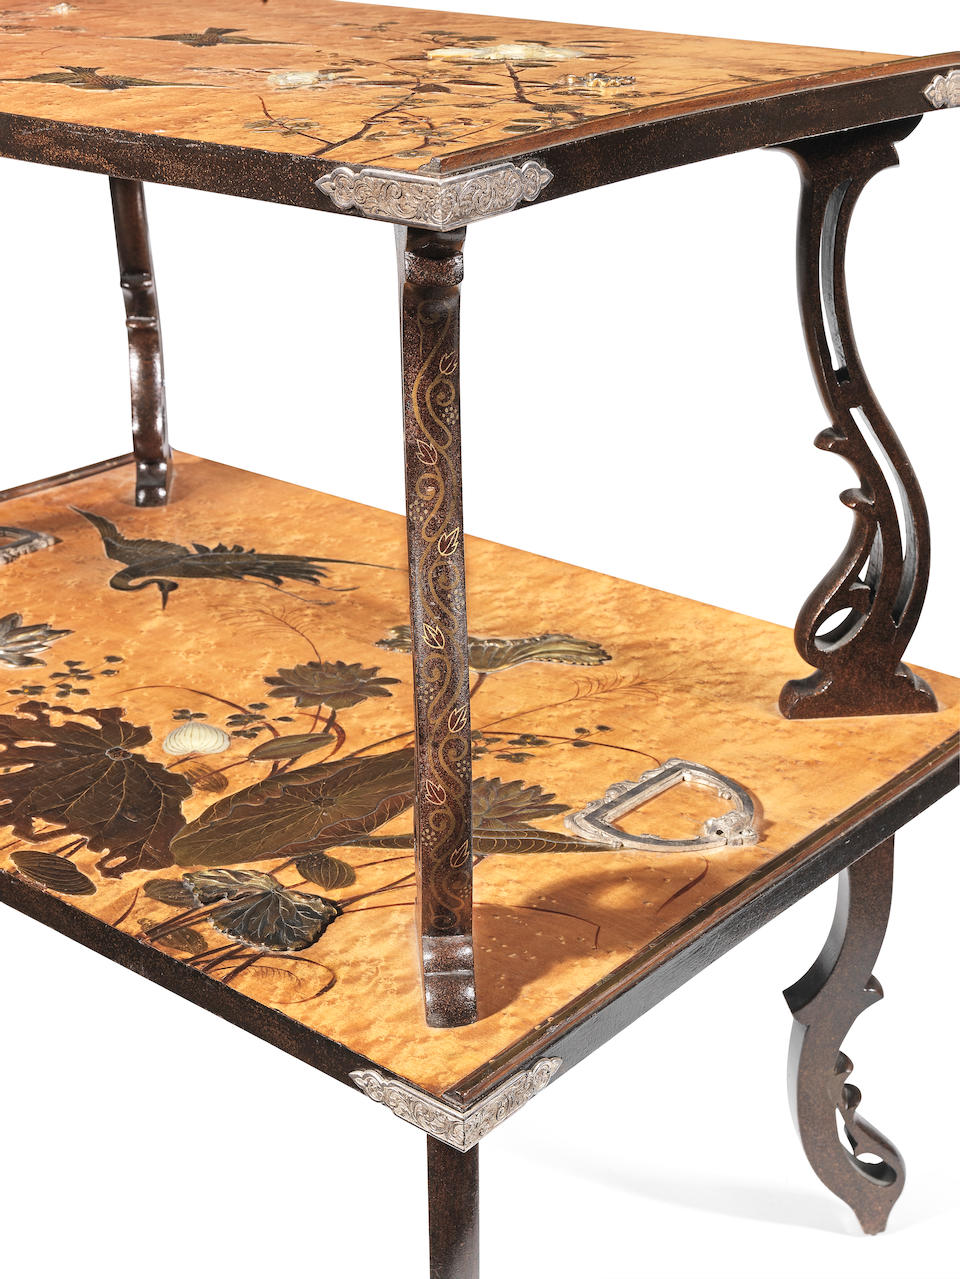 Louis Majorelle (French, 1859-1926) A Burr Maple, Lacquer, Mother-of-Pearl and Silvered Metal Two Tier Tea Table, circa 1895